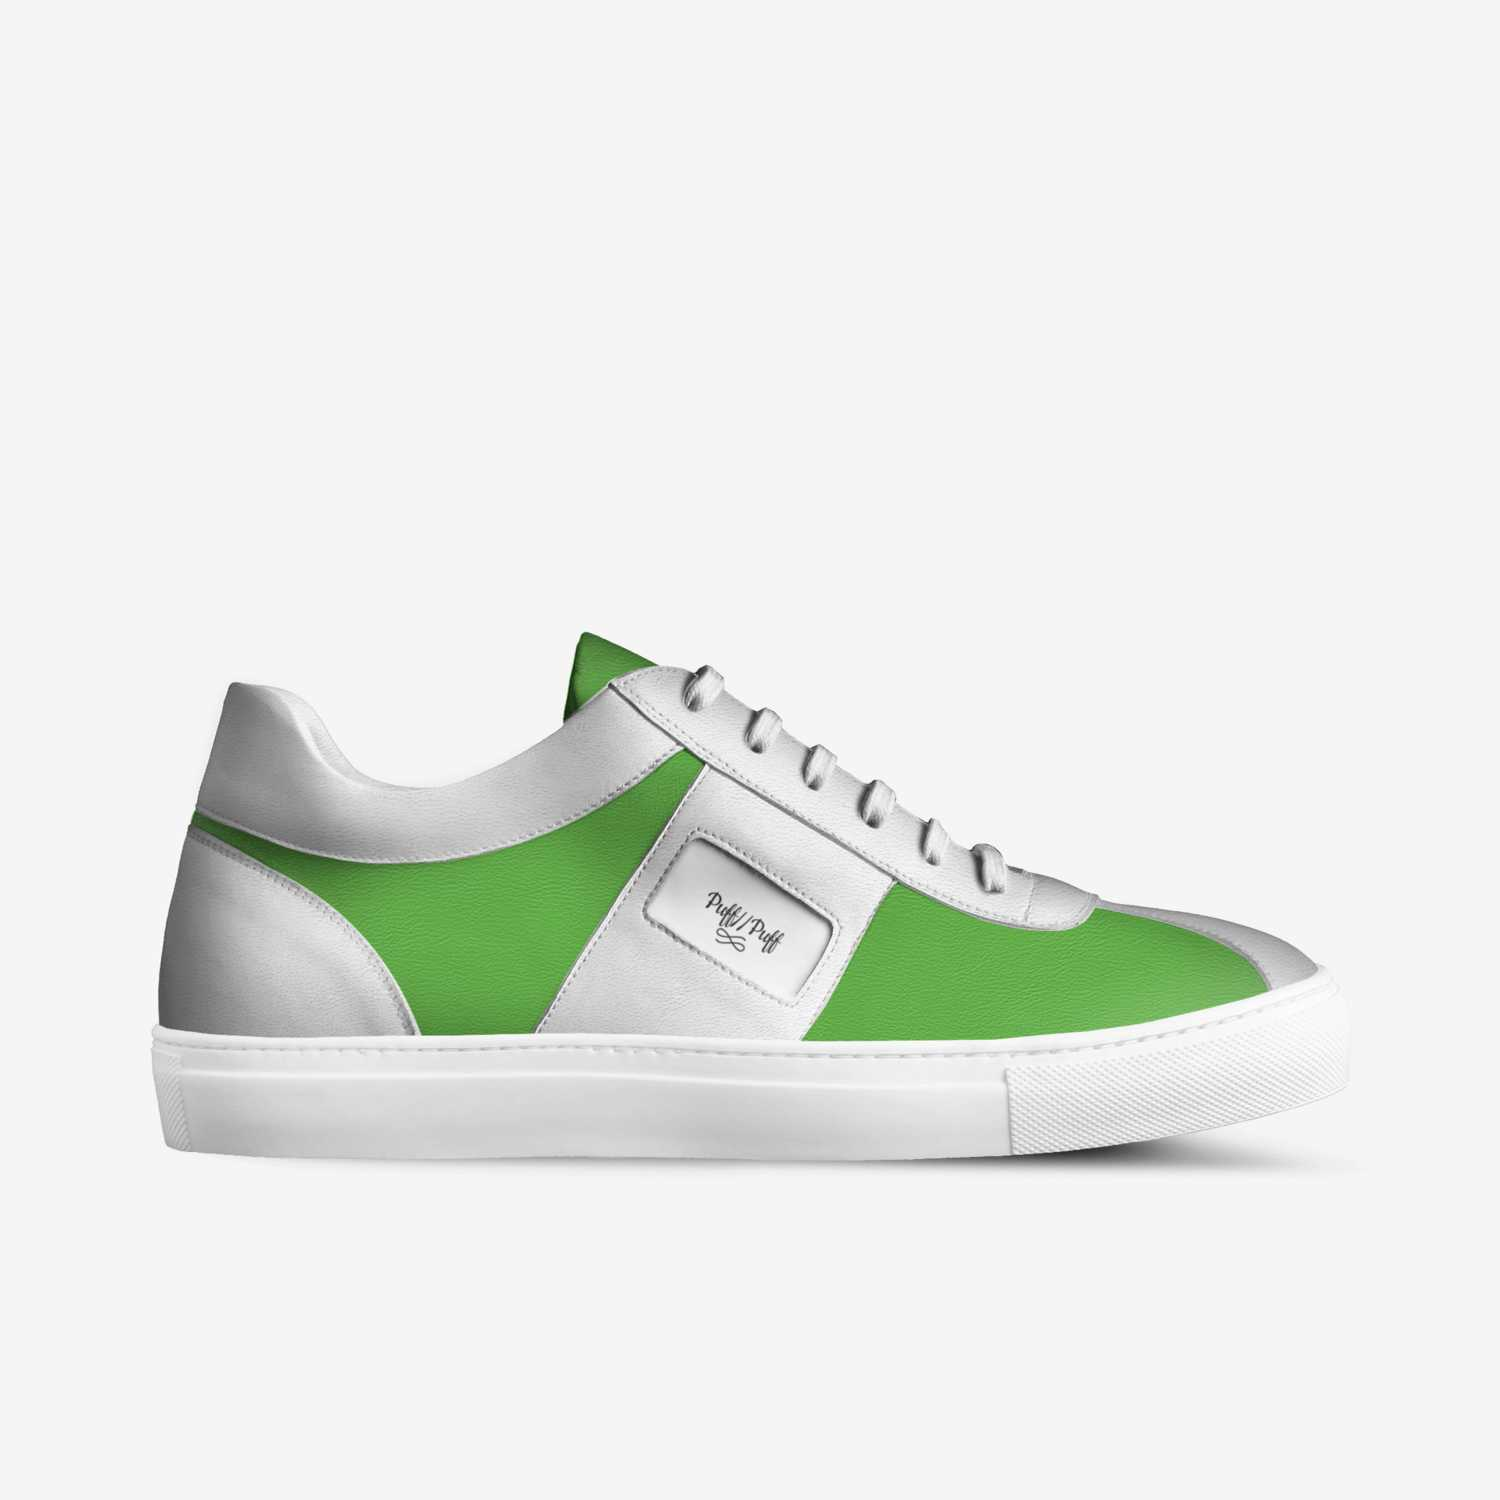 Puff//Puff custom made in Italy shoes by Norman Allen | Side view